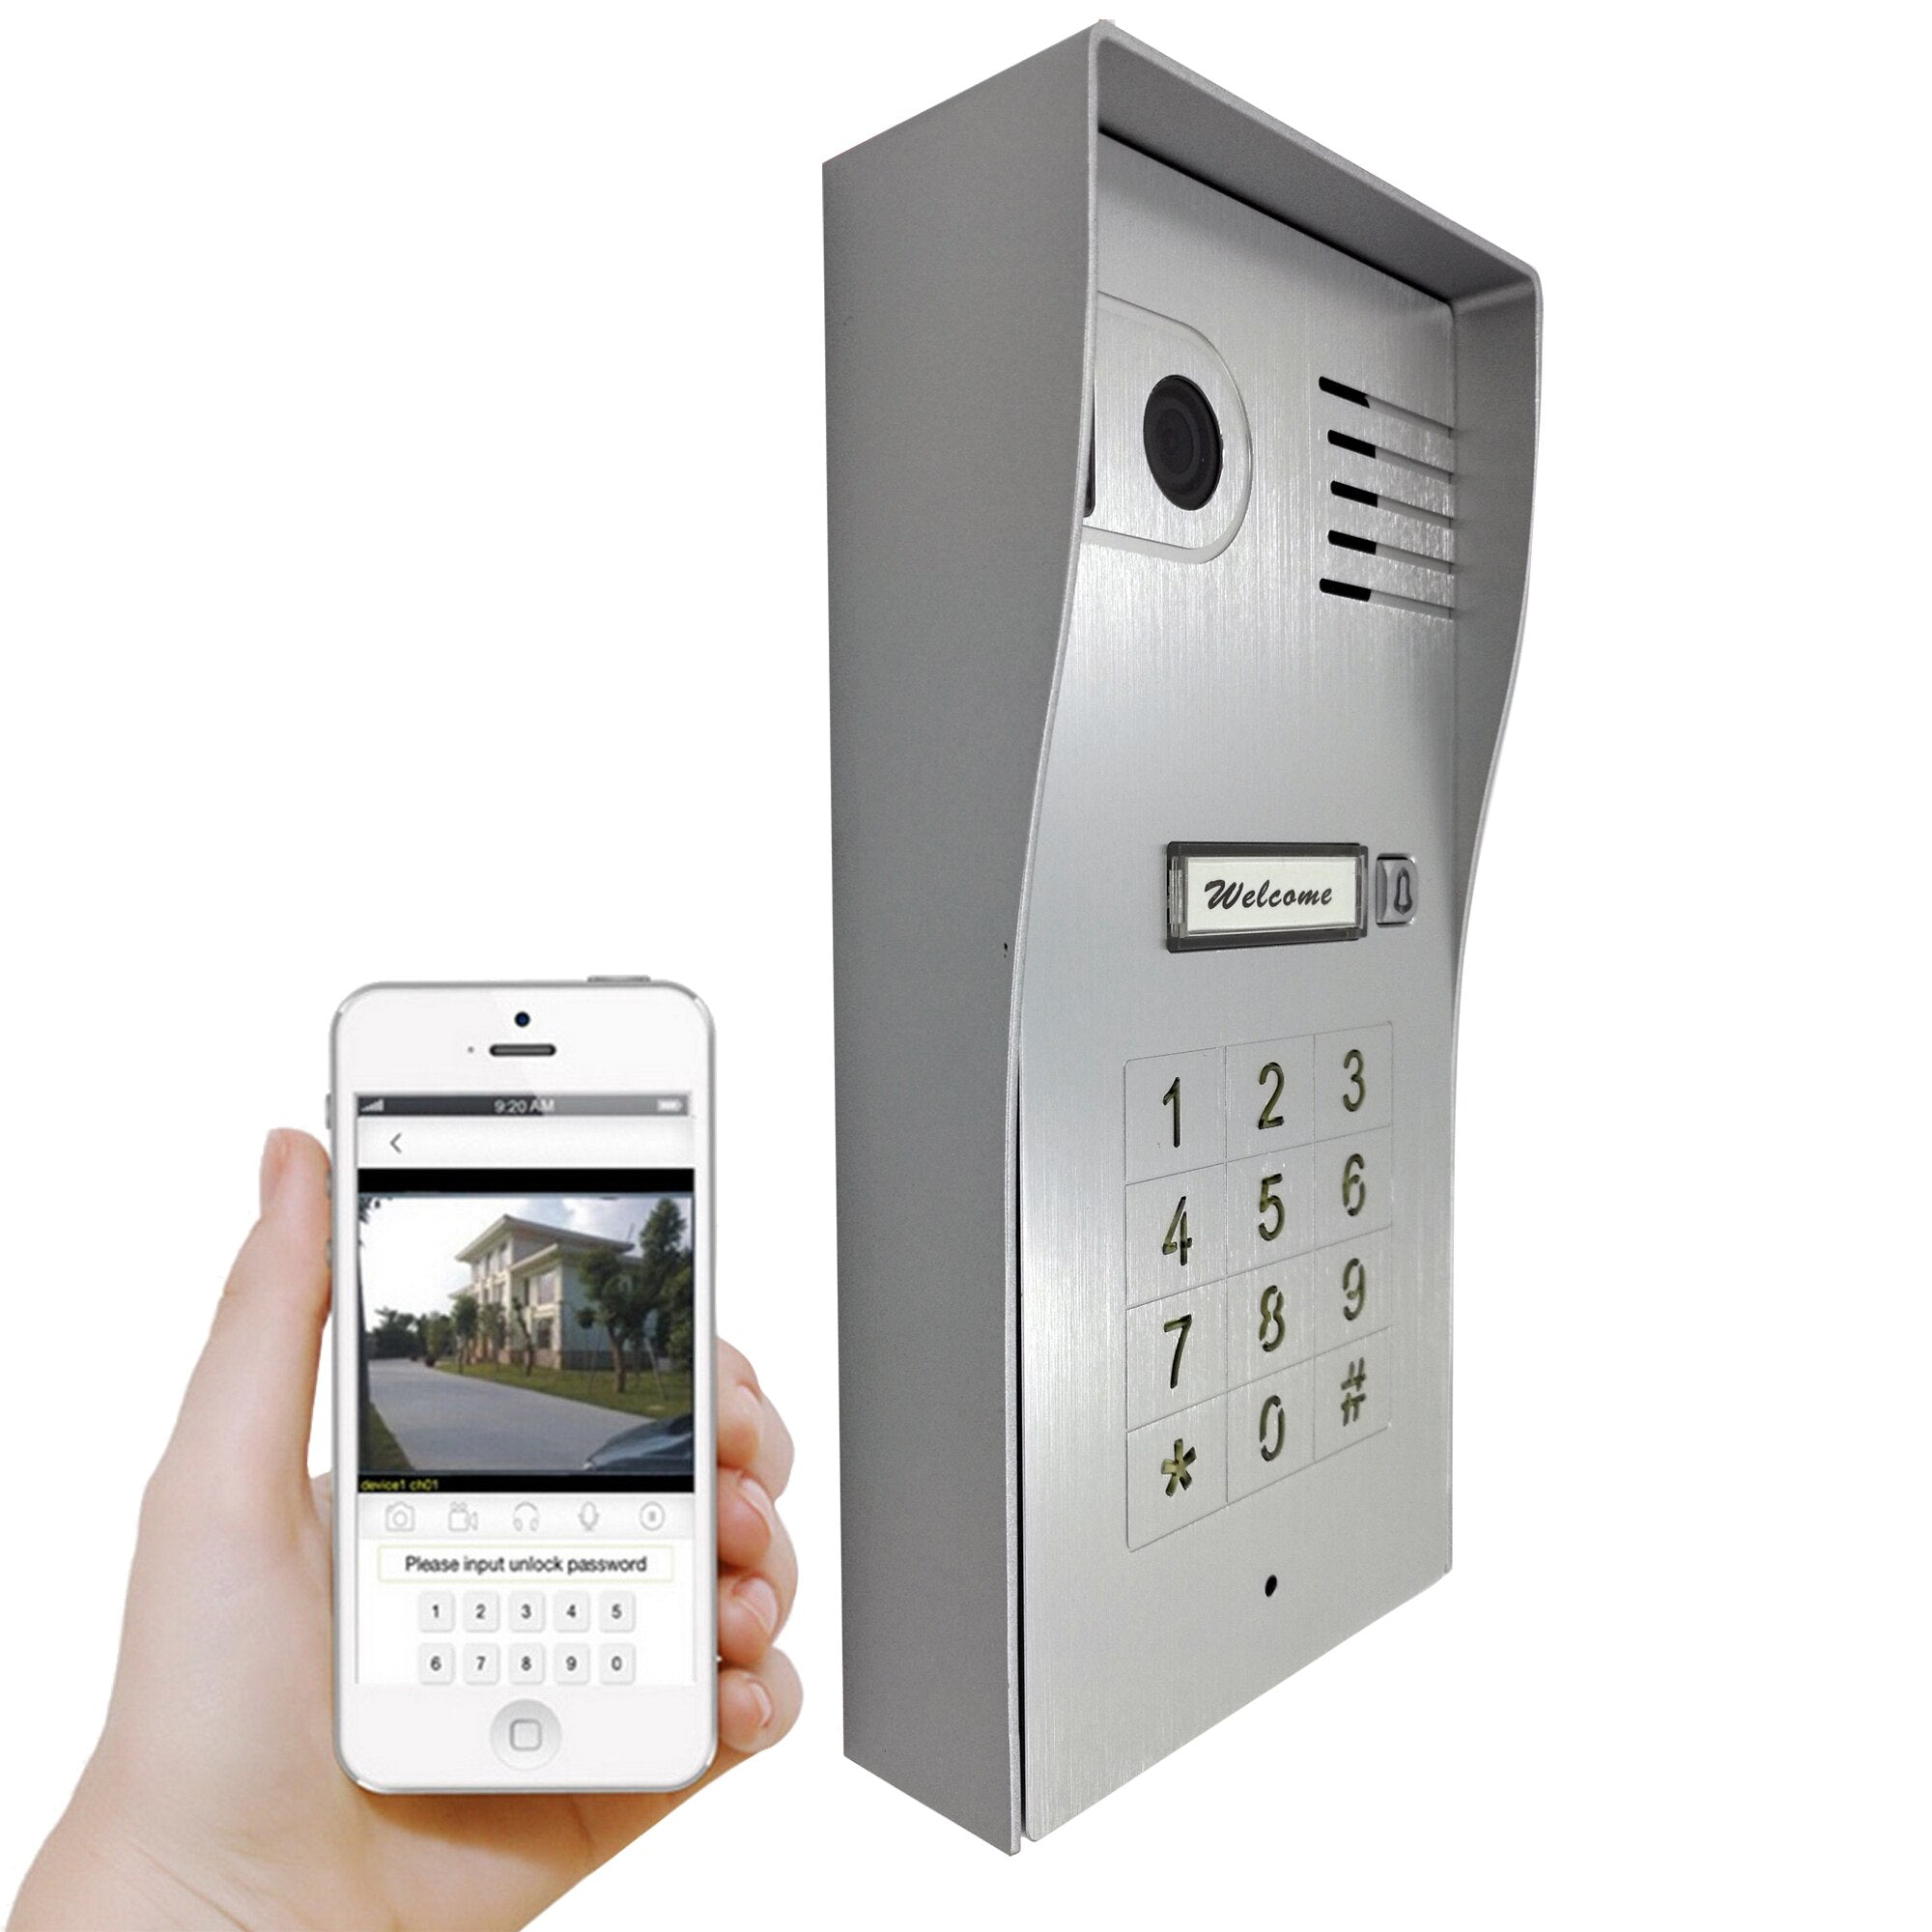 Global New  Wireless Wifi  IP Video door phone doorbell Camera Touchscreen Intercom Support IOS Android for Smart Phone Tablet